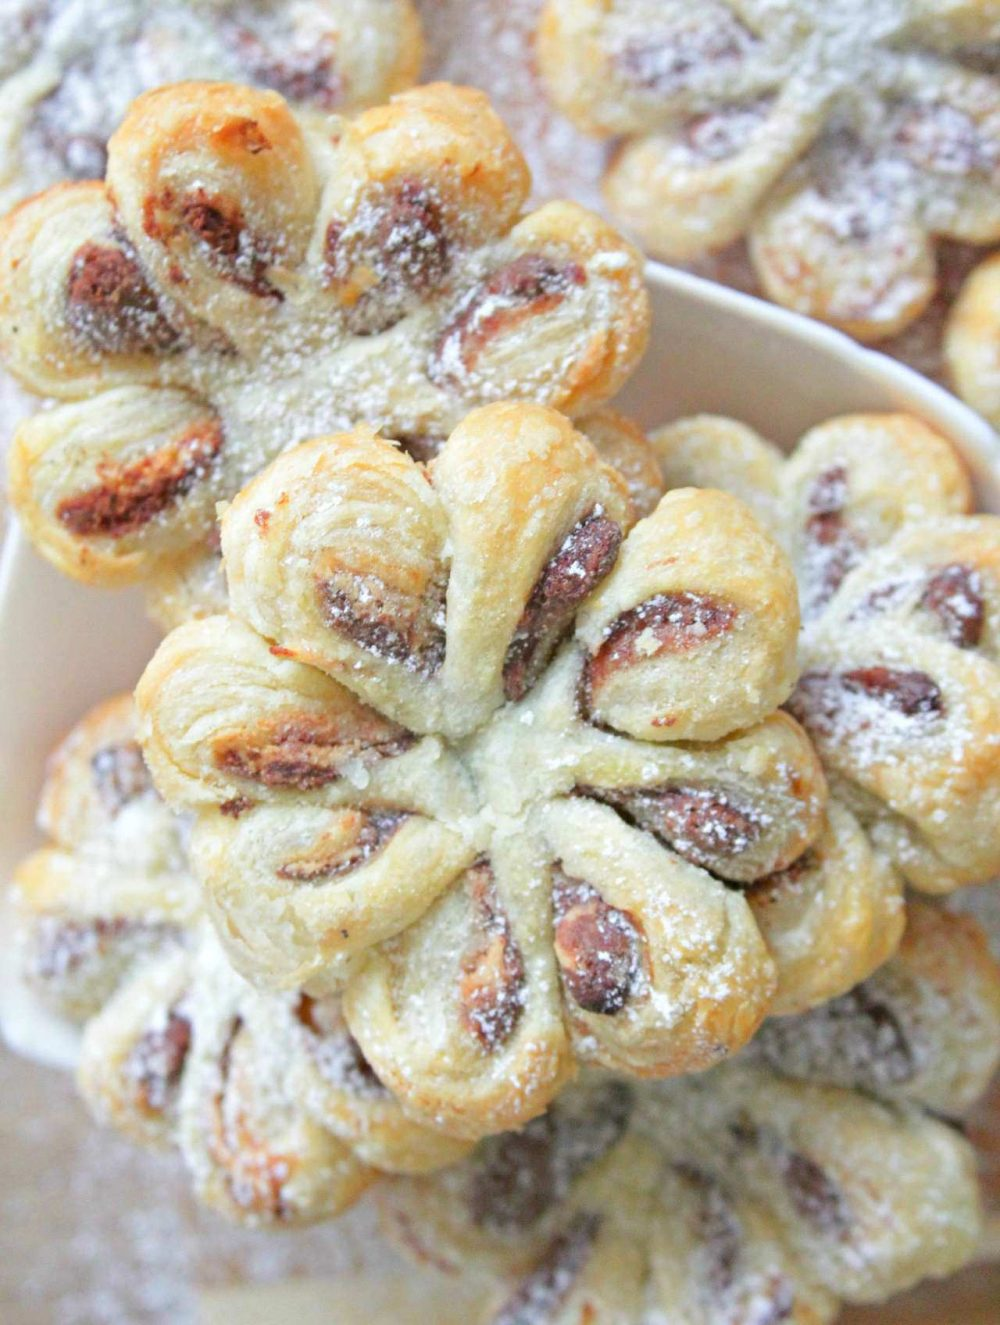 Pastry flowers with nutella and peanut butter